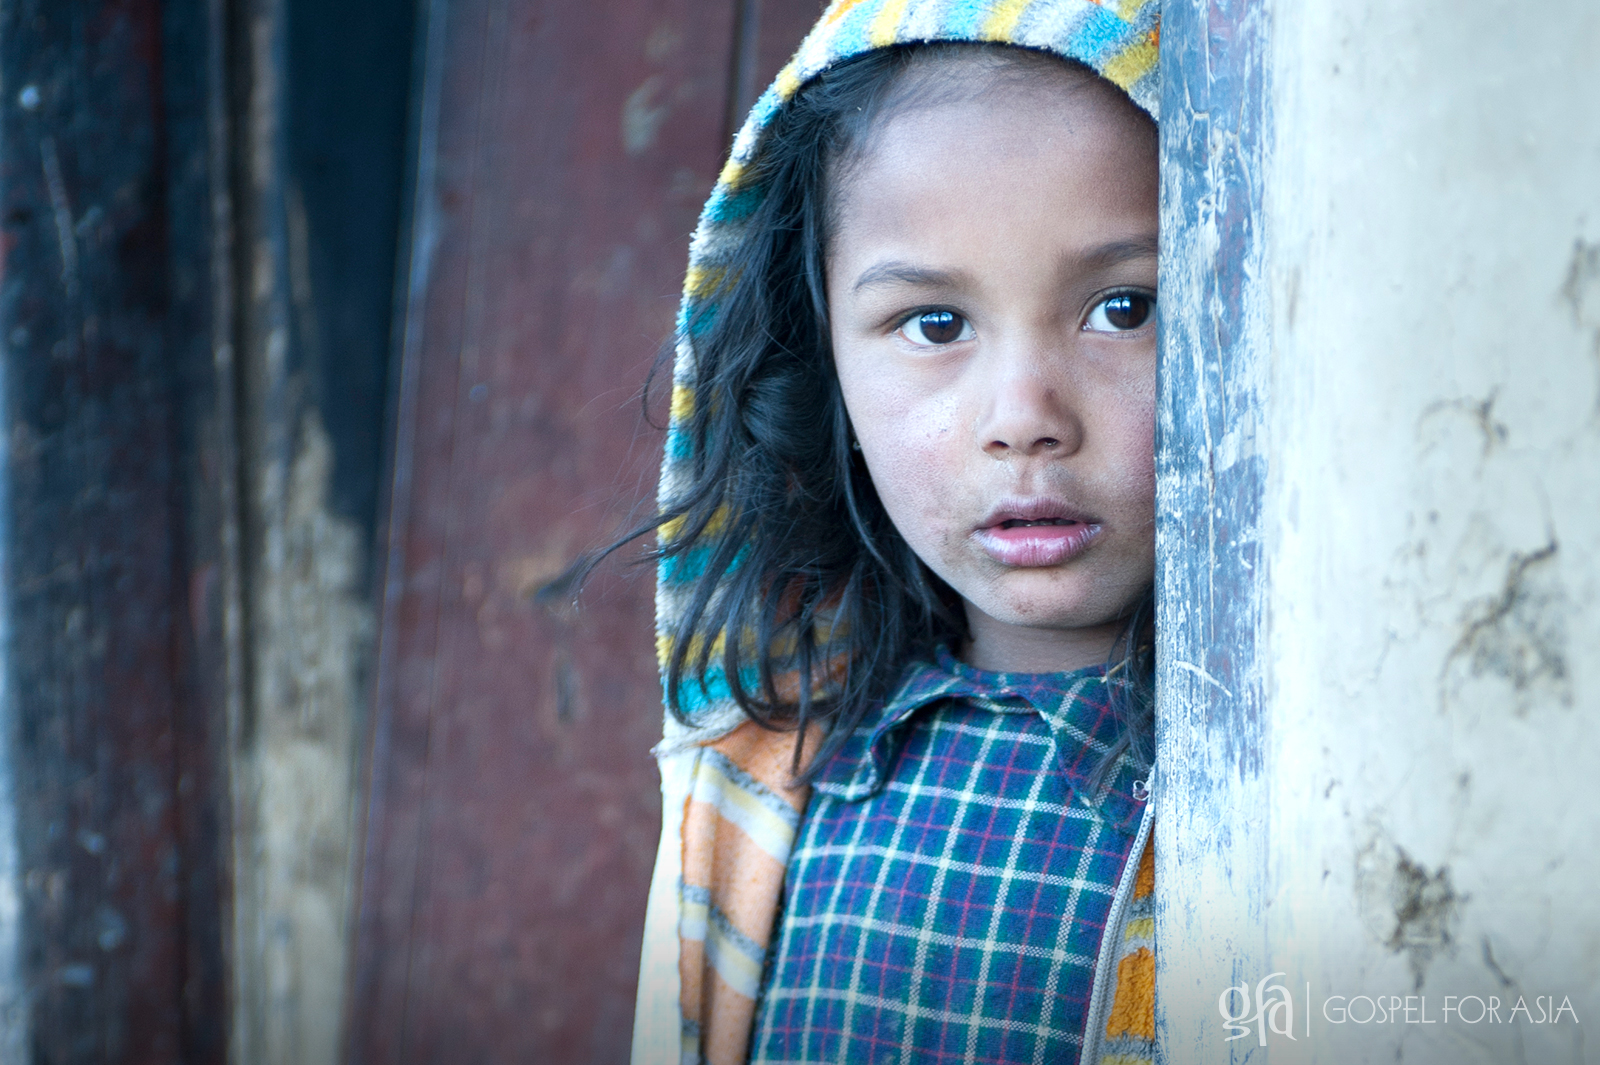 Make a difference in the life of a street child in Asia - KP Yohannan - Gospel for Asia